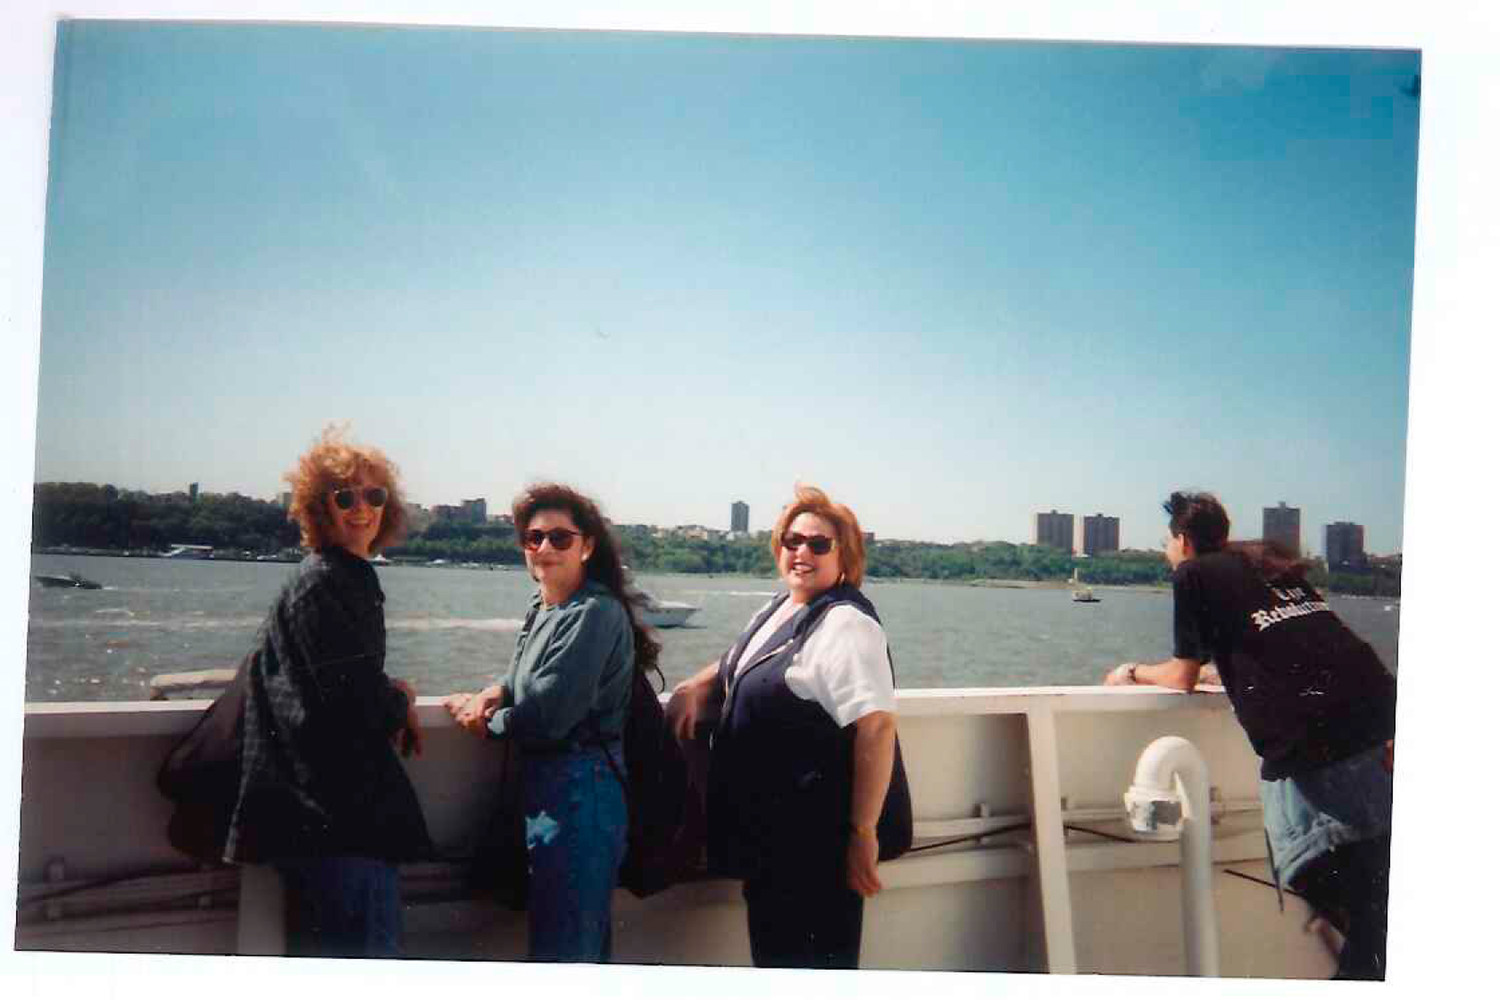 The photos taken on the boat cruise around NYC, above right, and of a man on the phone,  were not claimed yet. If you think you know who they are, send us a tip.